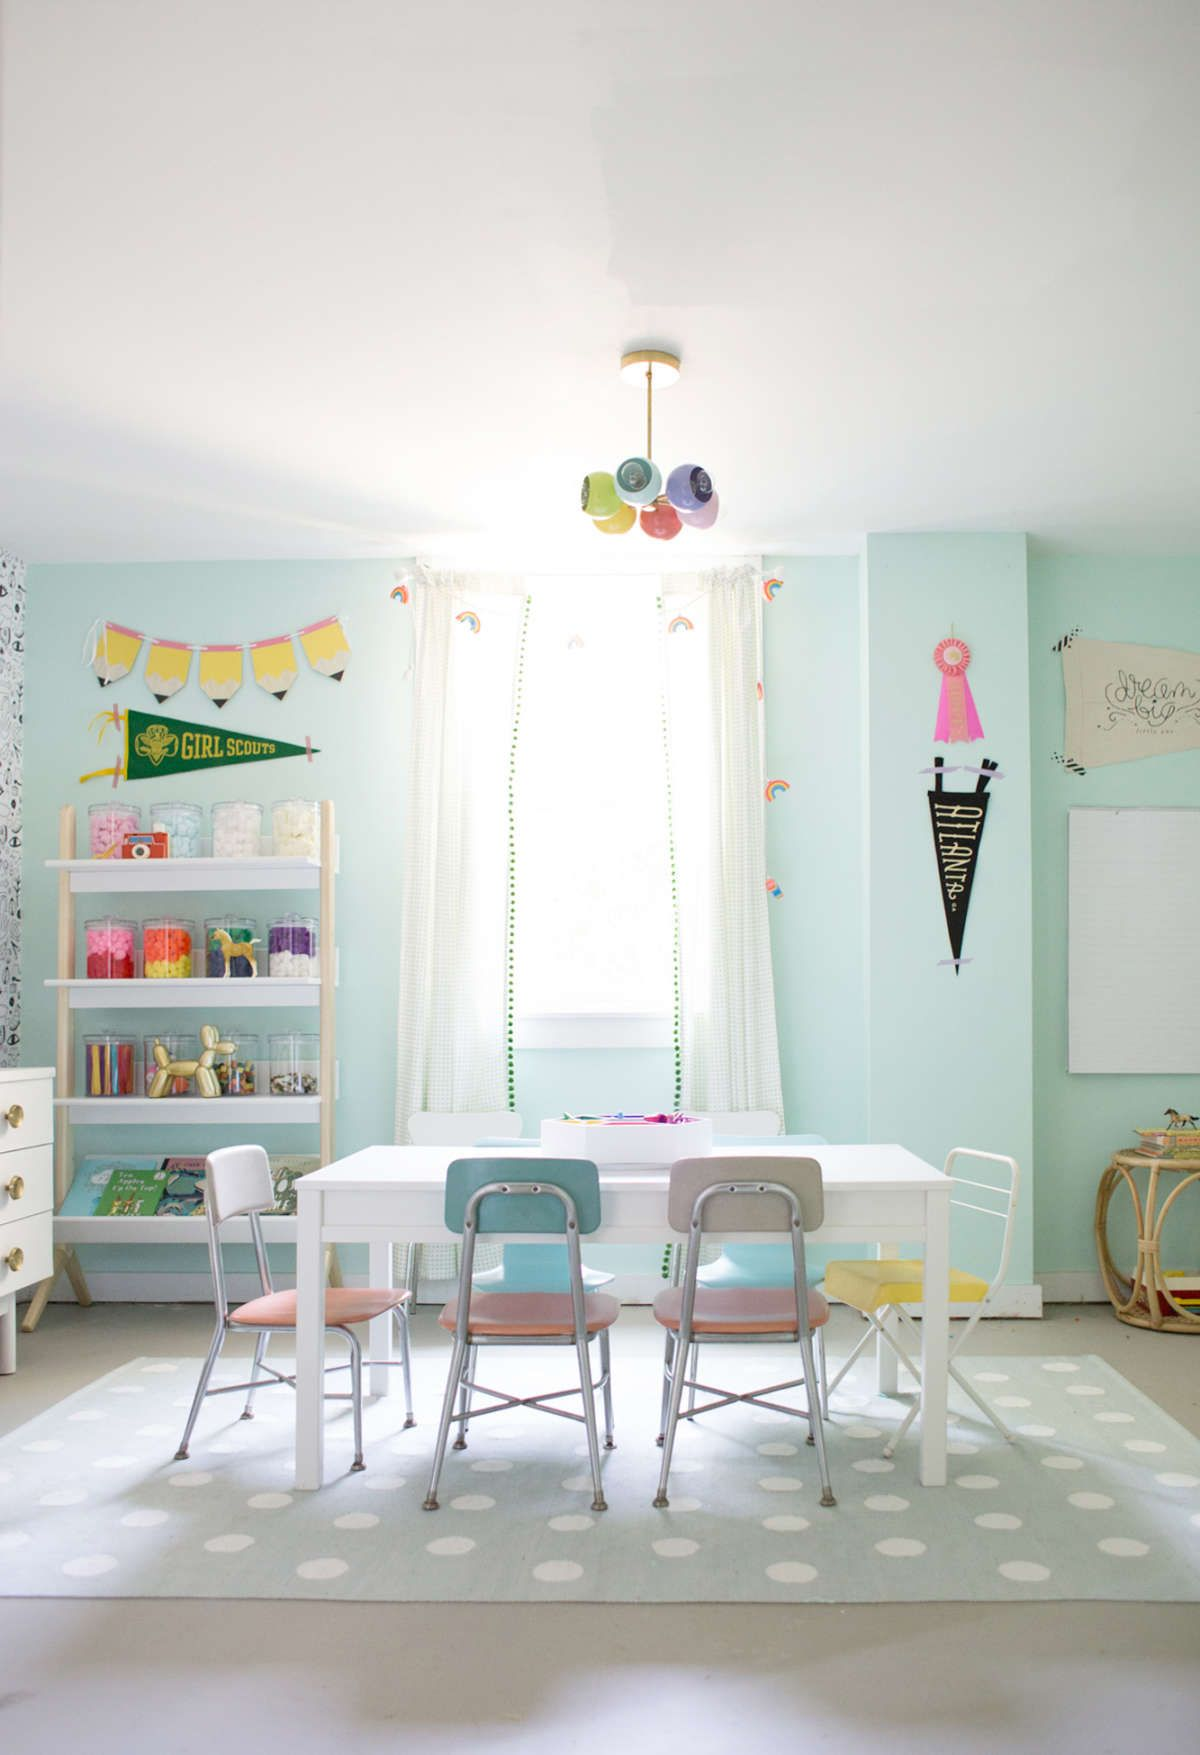 craft room ideas for kids | Playroom Inspiration | Pinterest | Room ...